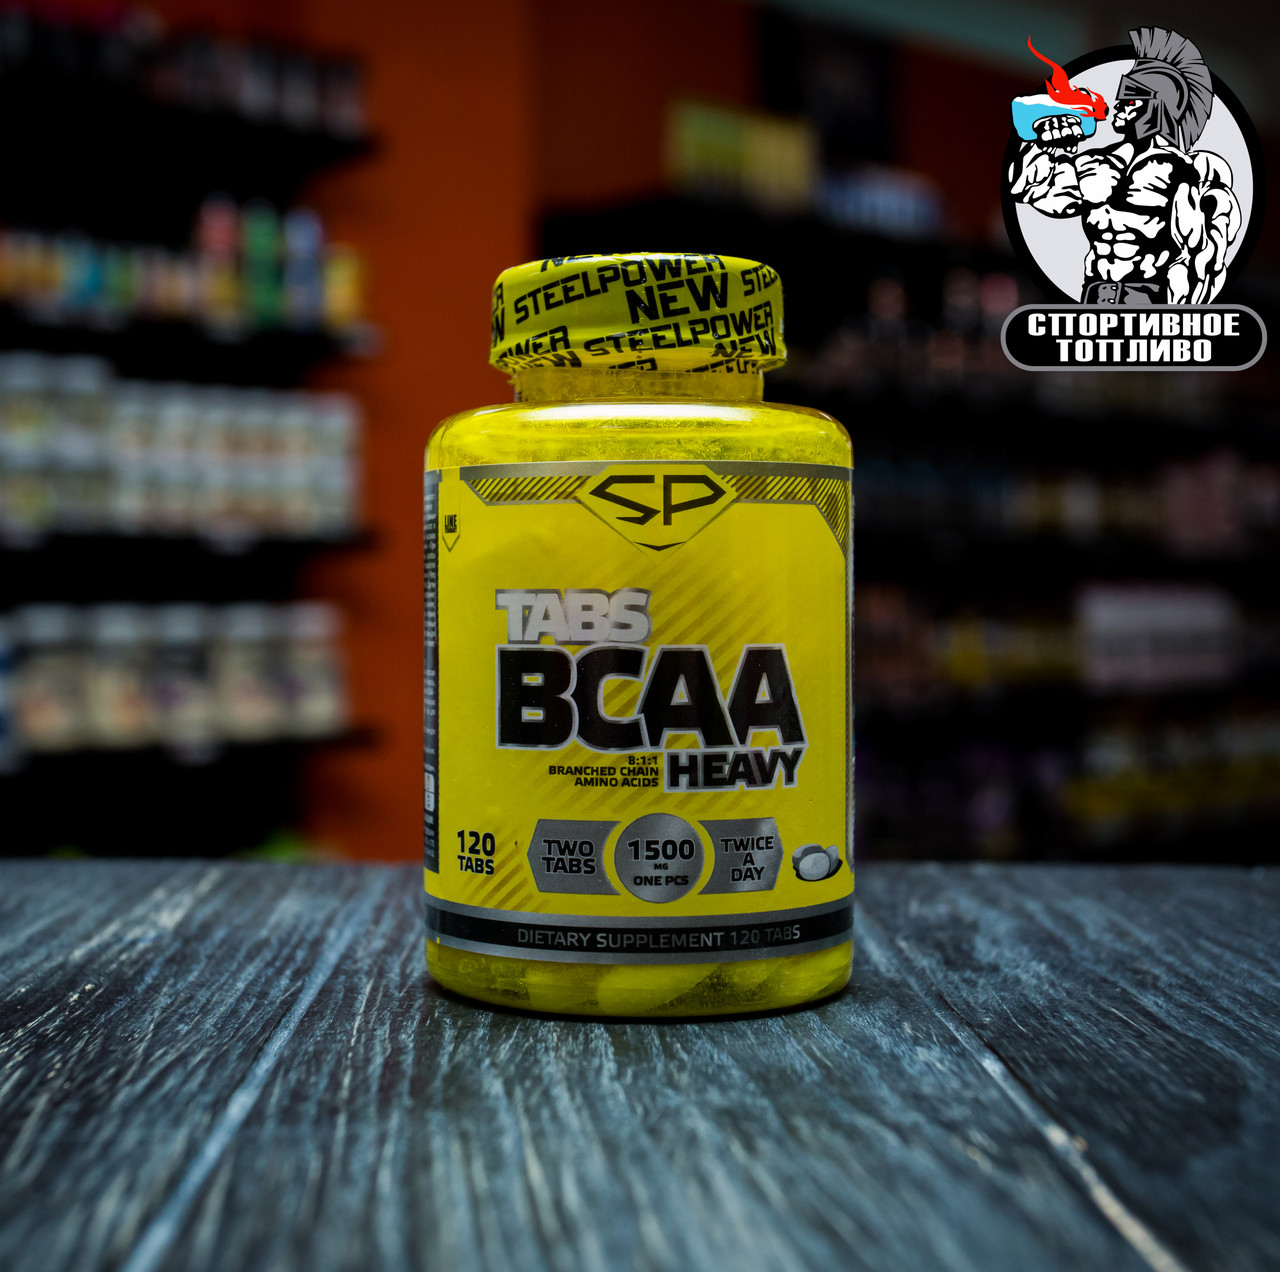 SteelPower - Heavy BCAA 120таблеток